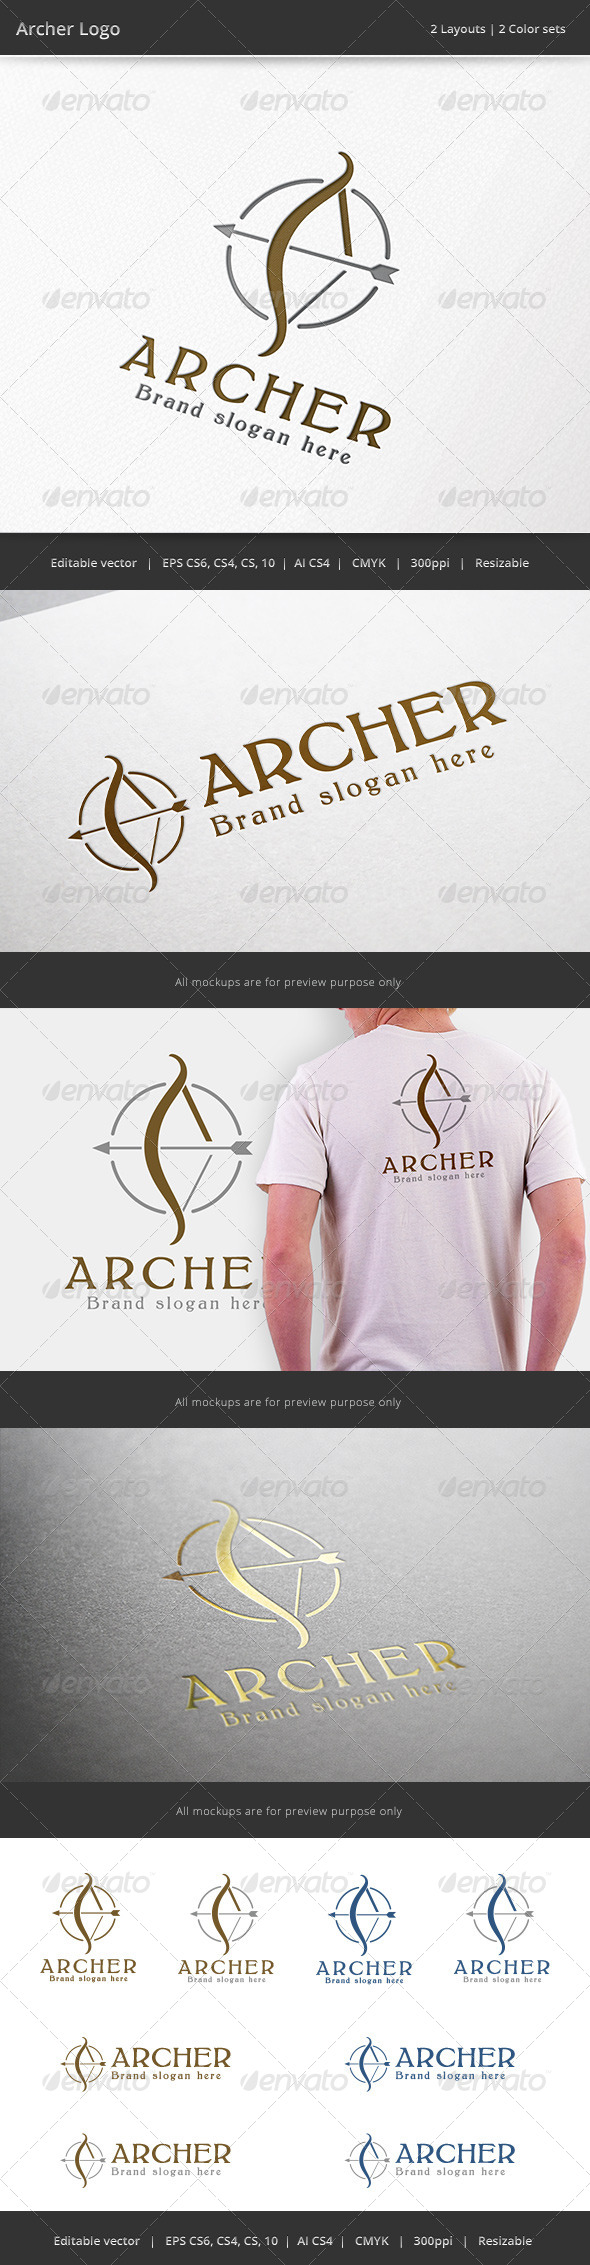 Archer Arrow Logo - Objects Logo Templates